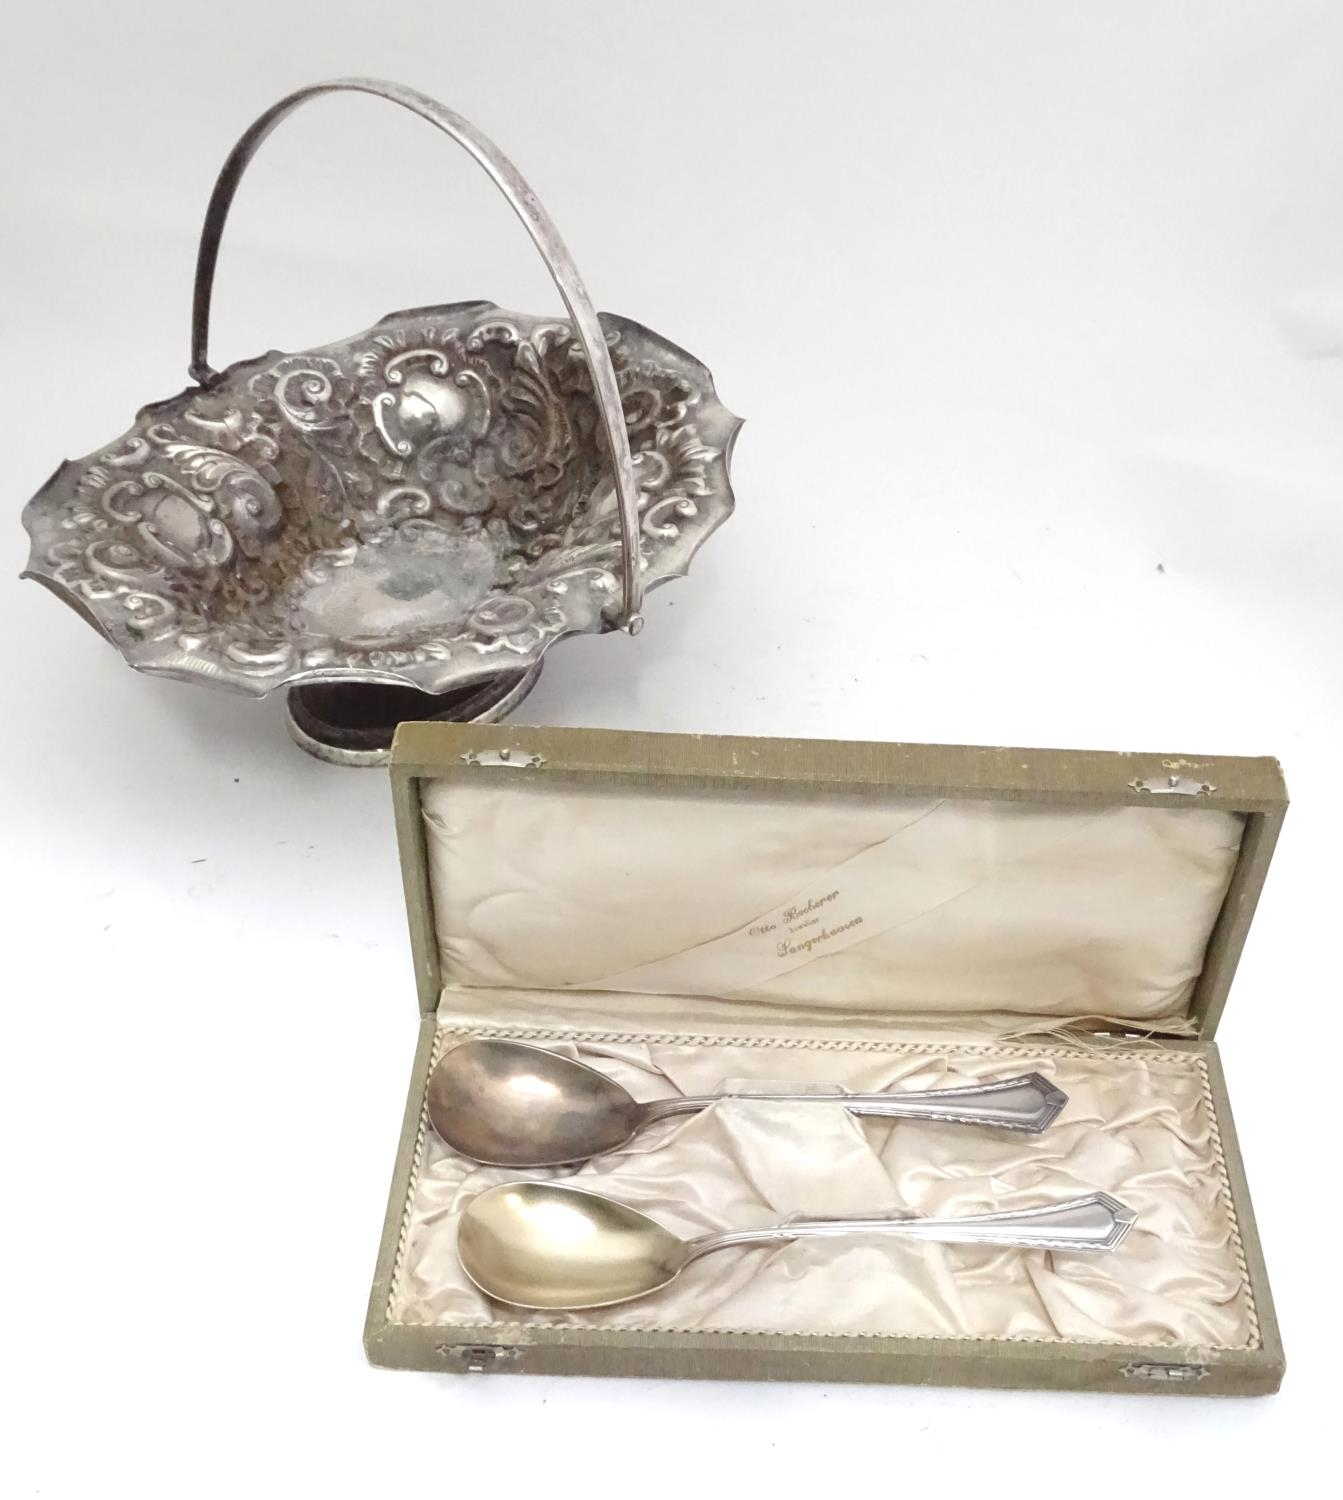 A silver plated bowl together with 2 spoons Please Note - we do not make reference to the